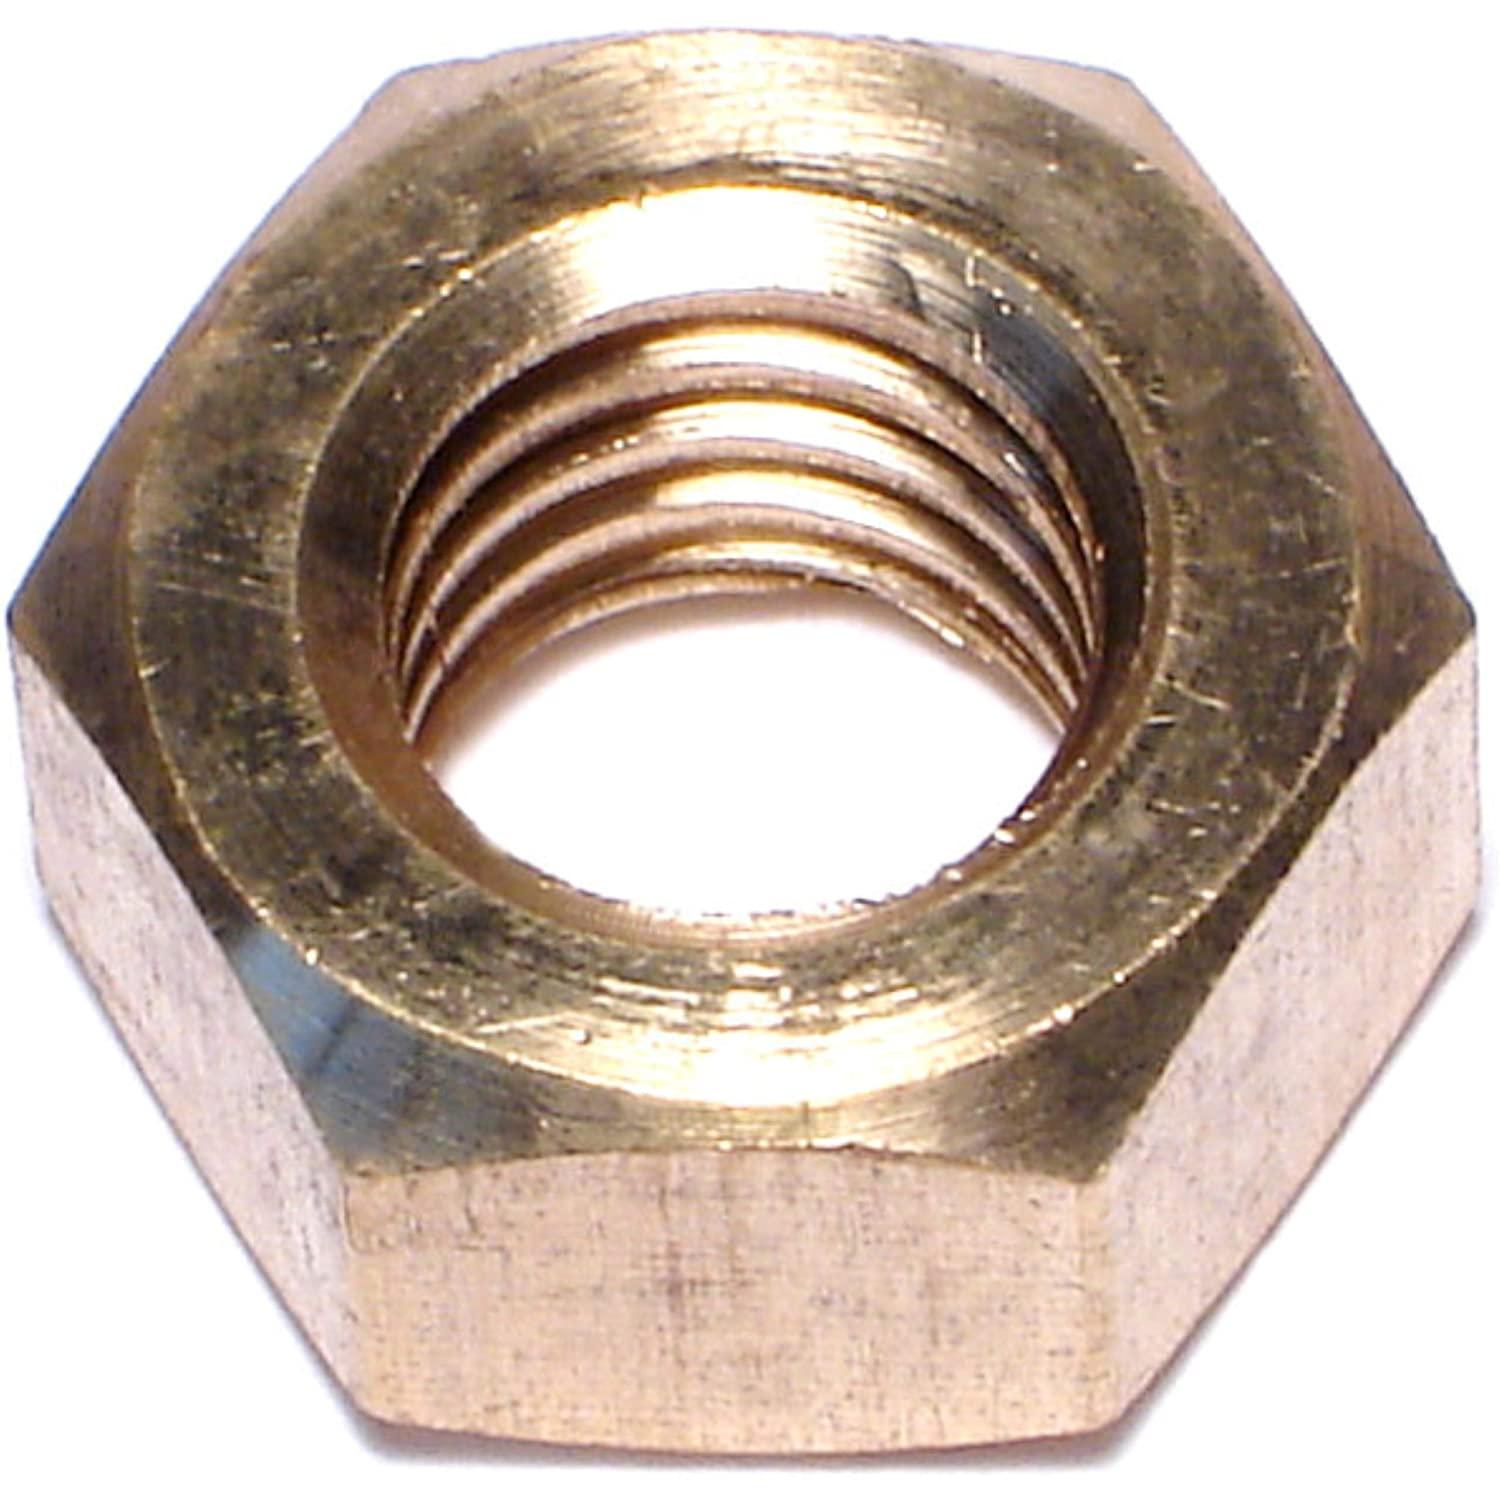 Piece-8 7//16-14 Hard-to-Find Fastener 014973329068 Finished Hex Nuts